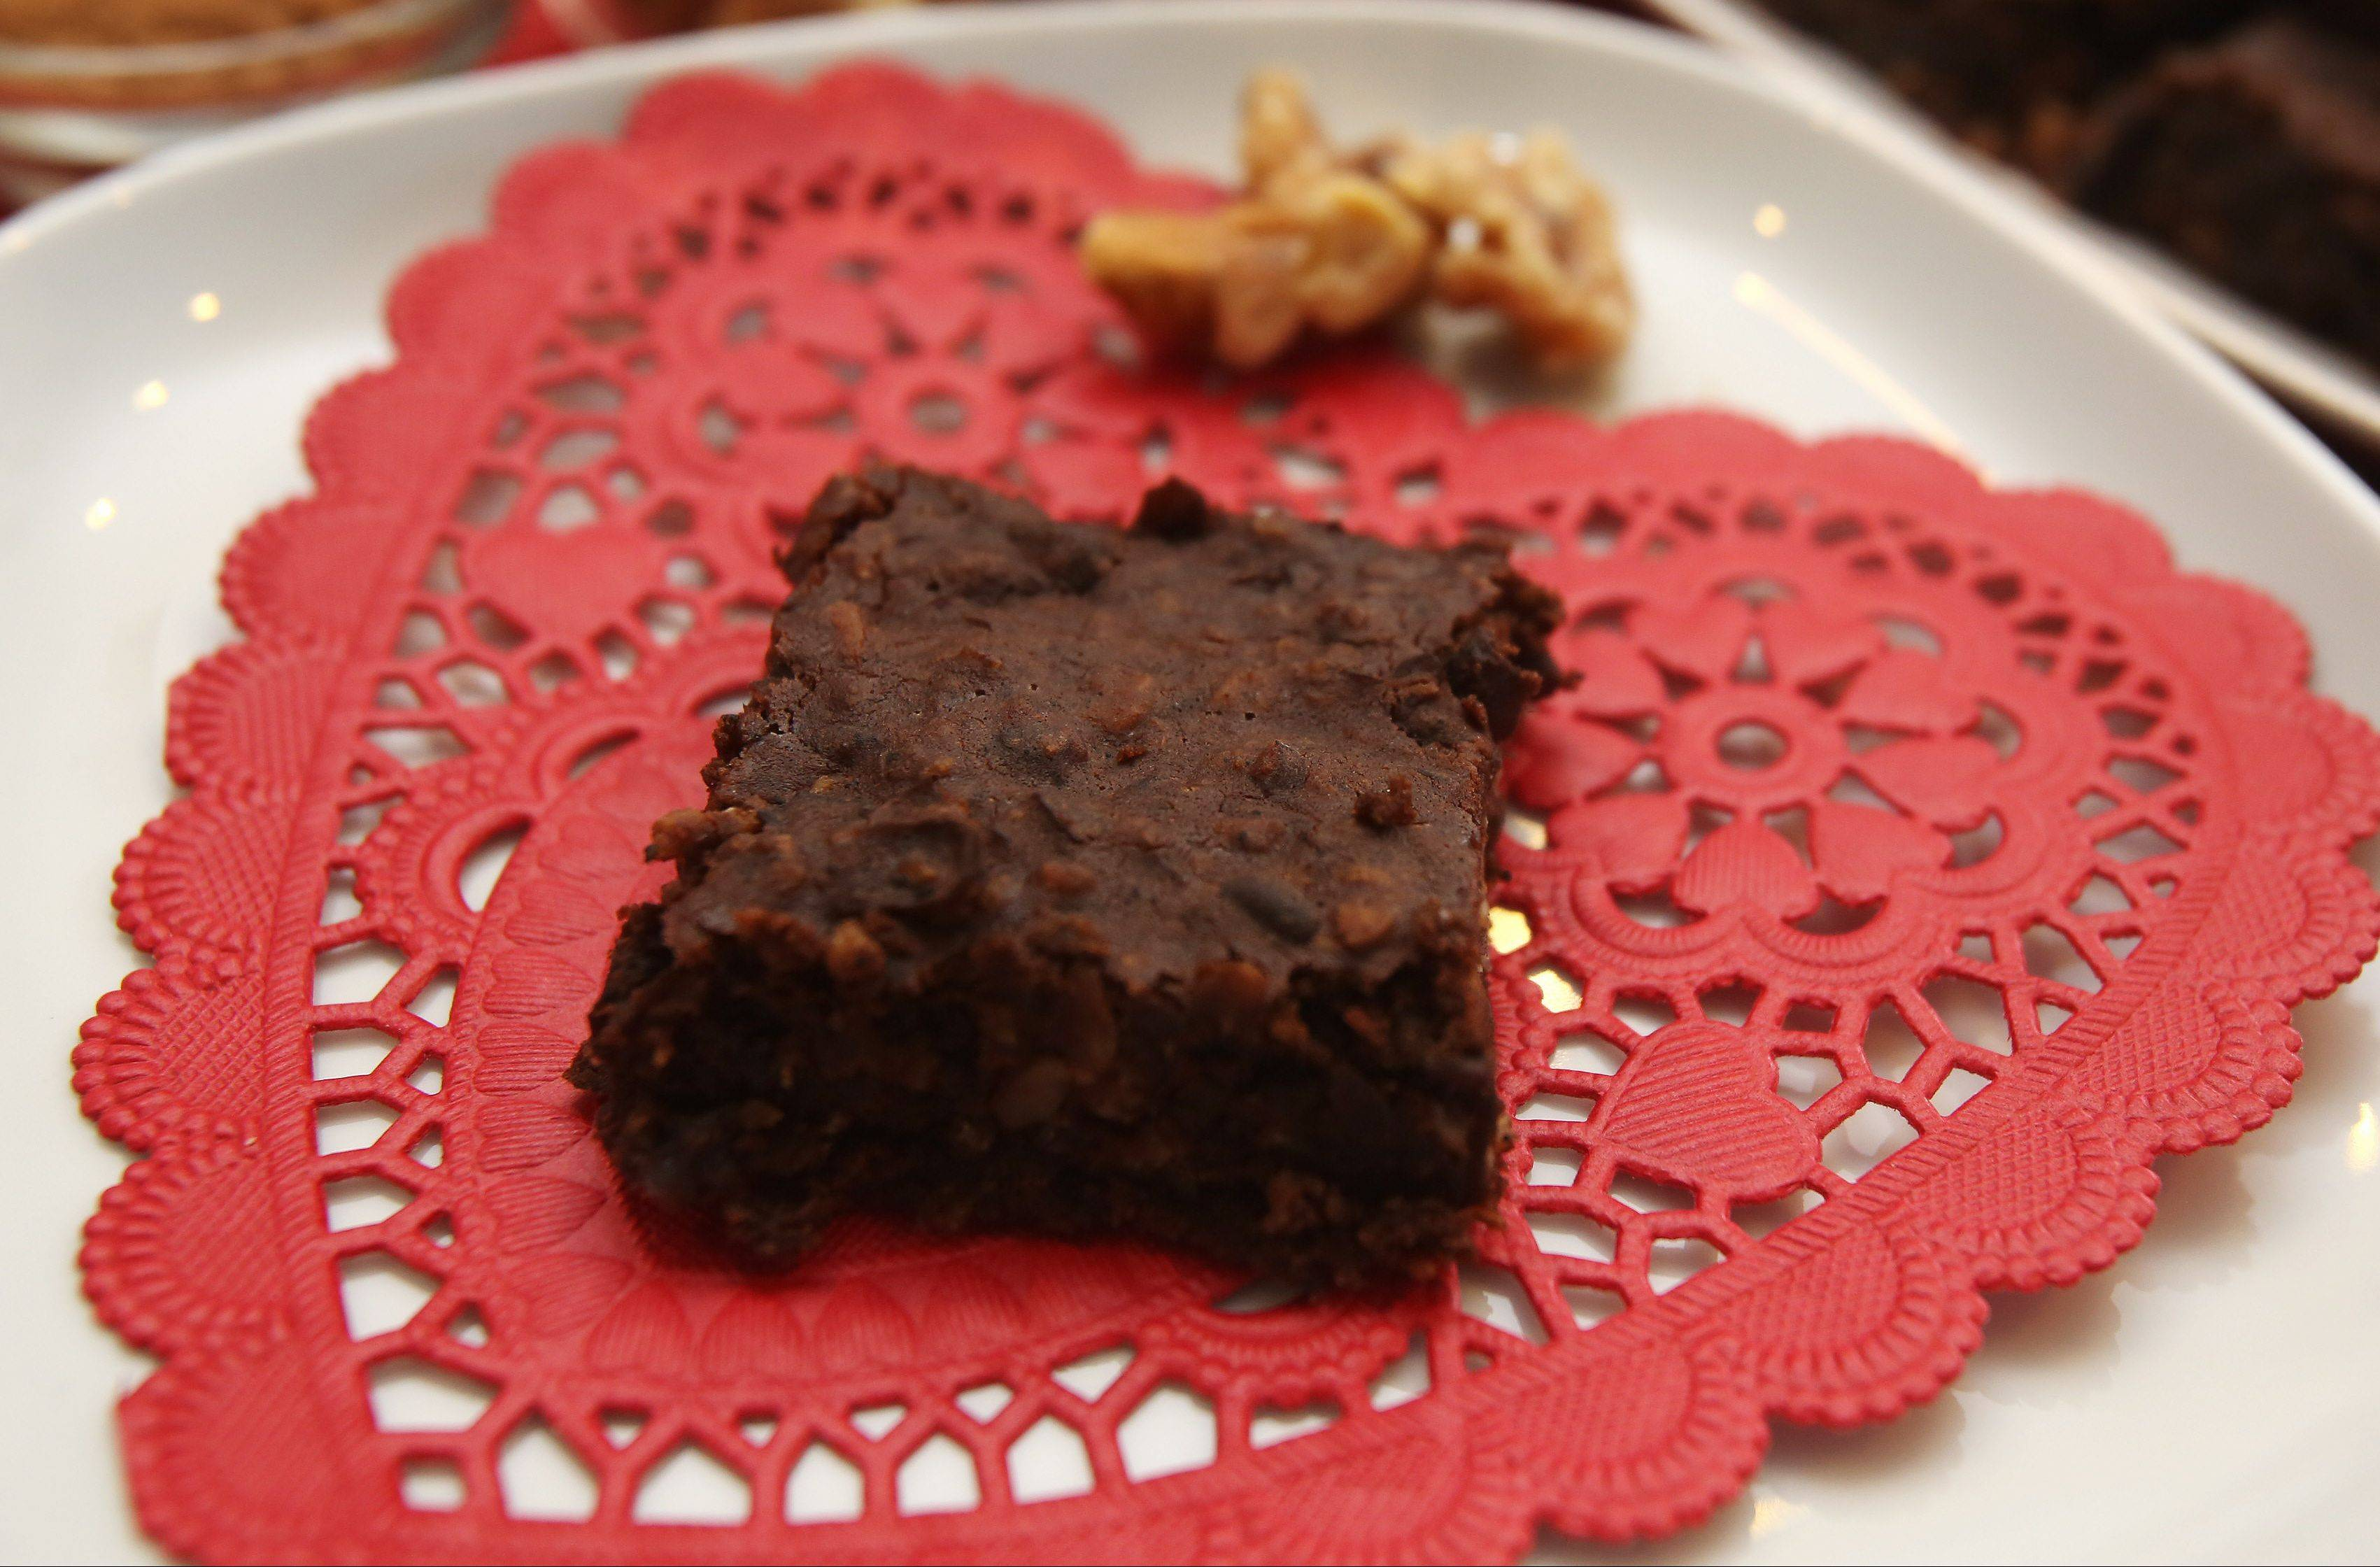 Dark cocoa and black beans make this Valentine's Day brownie a good choice for your sweetheart and your sweetheart's heart.